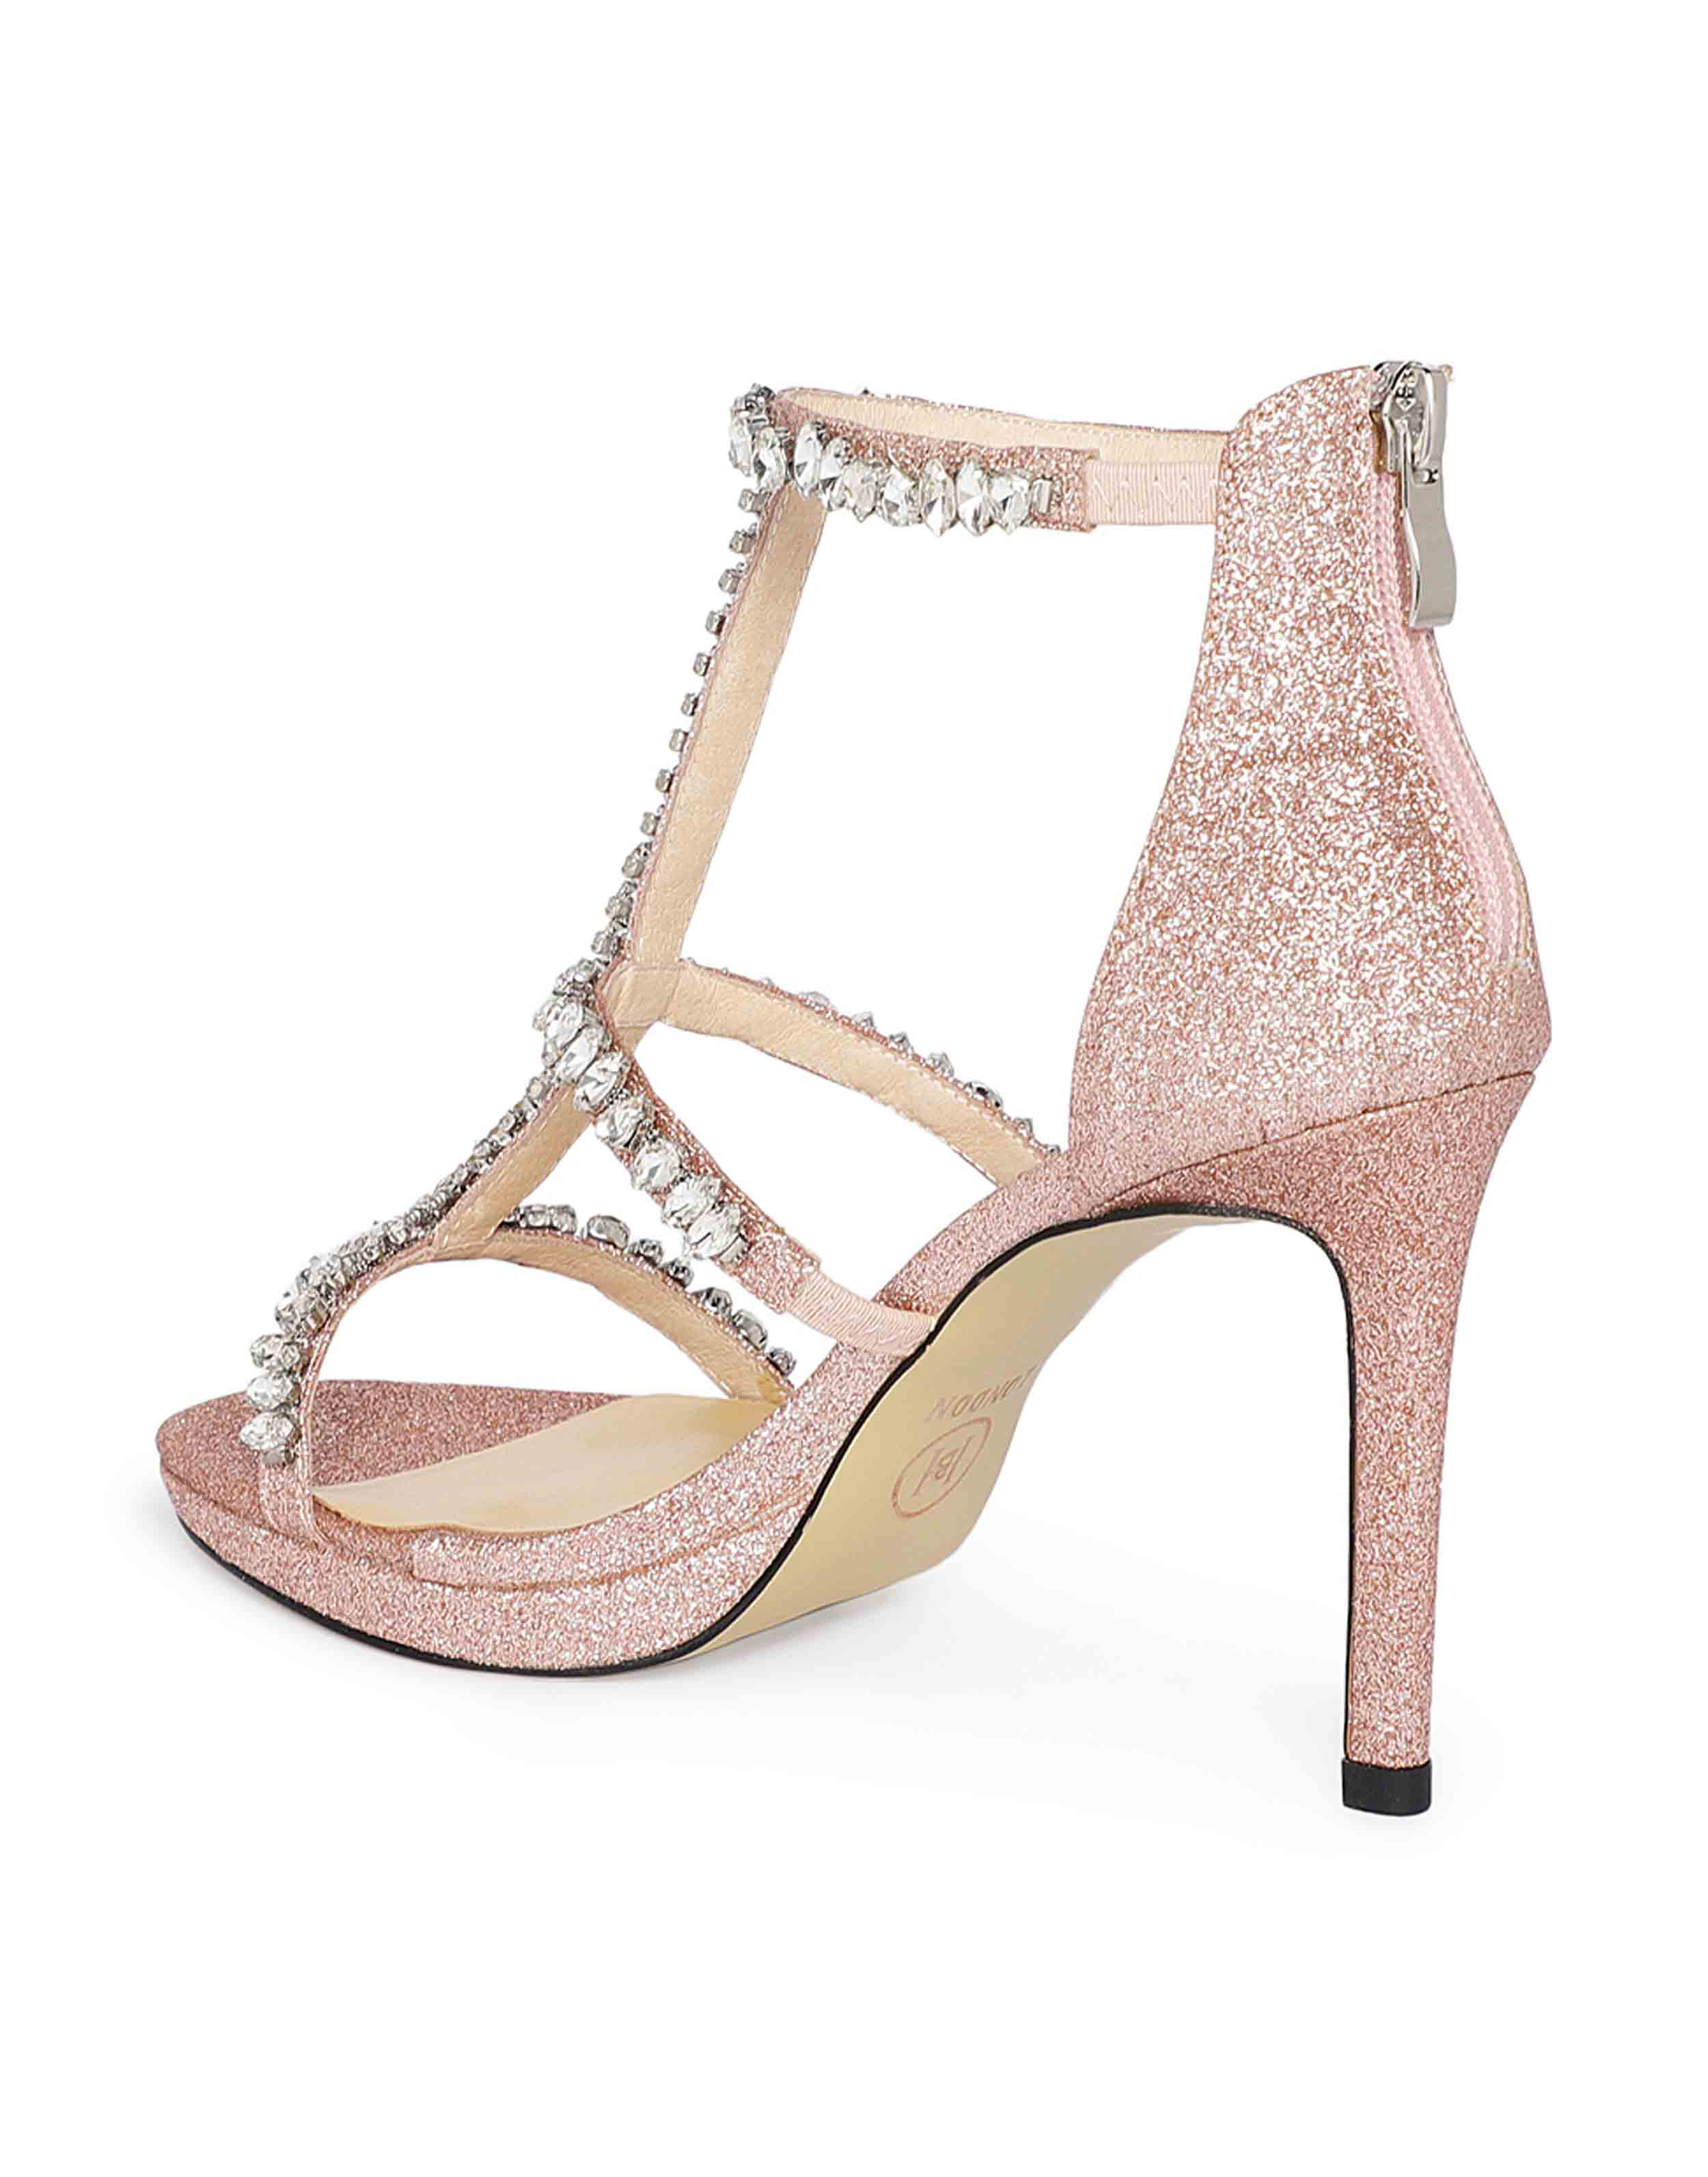 Shimmery Sandals3